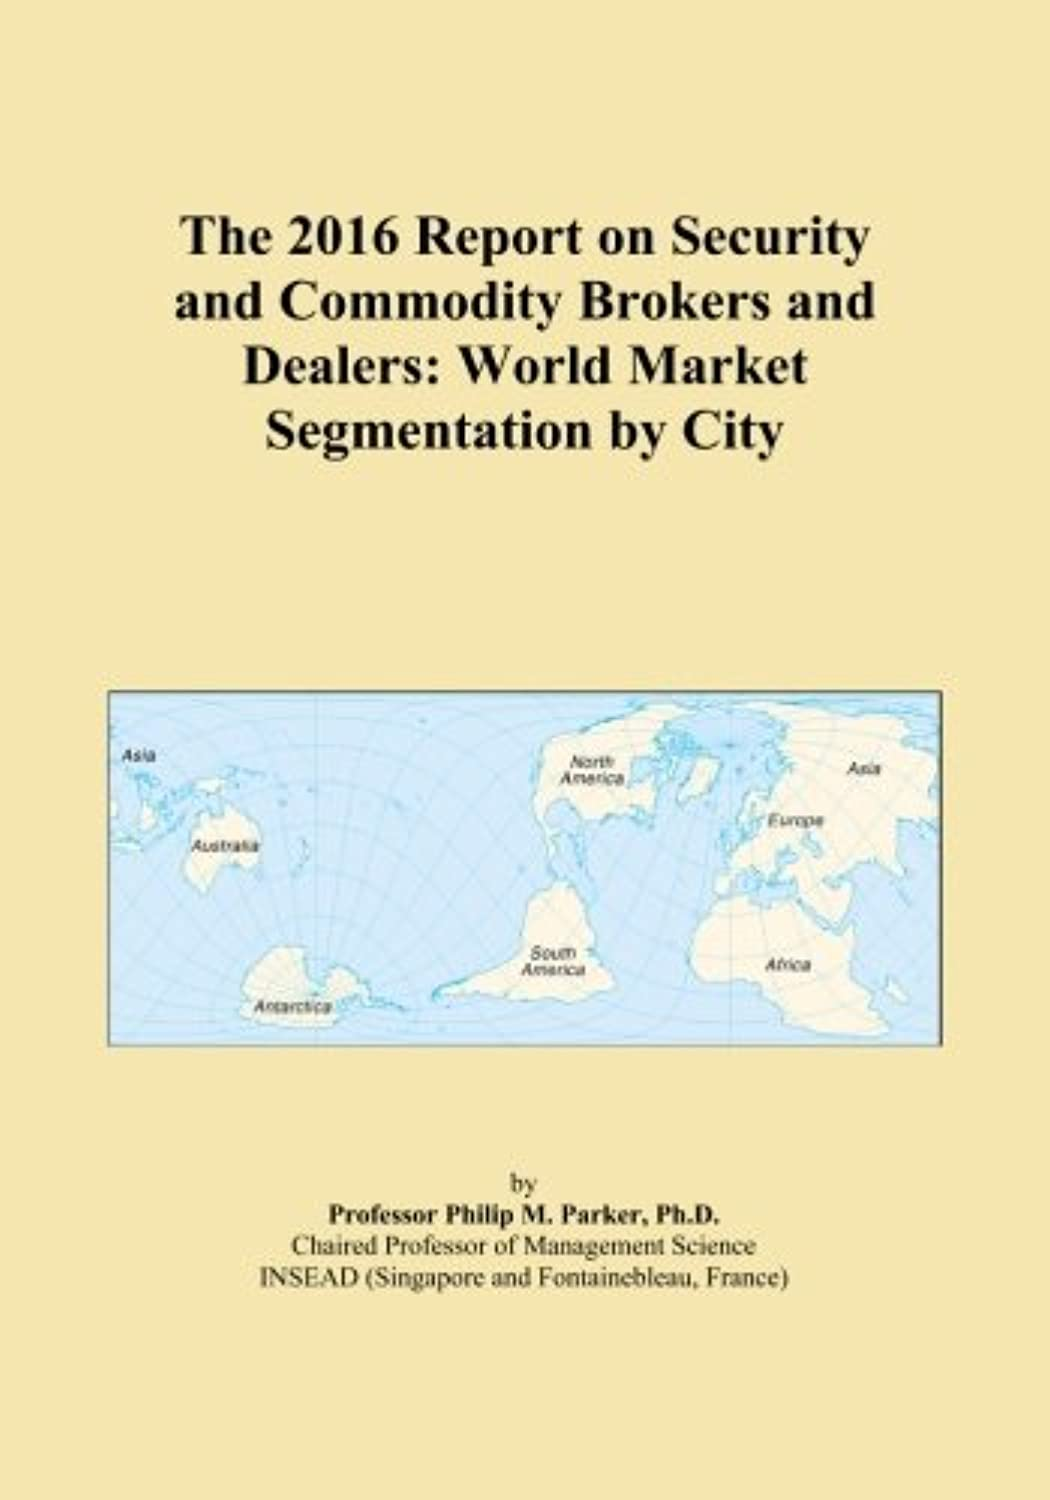 The 2016 Report on Security and Commodity Brokers and Dealers: World Market Segmentation by City